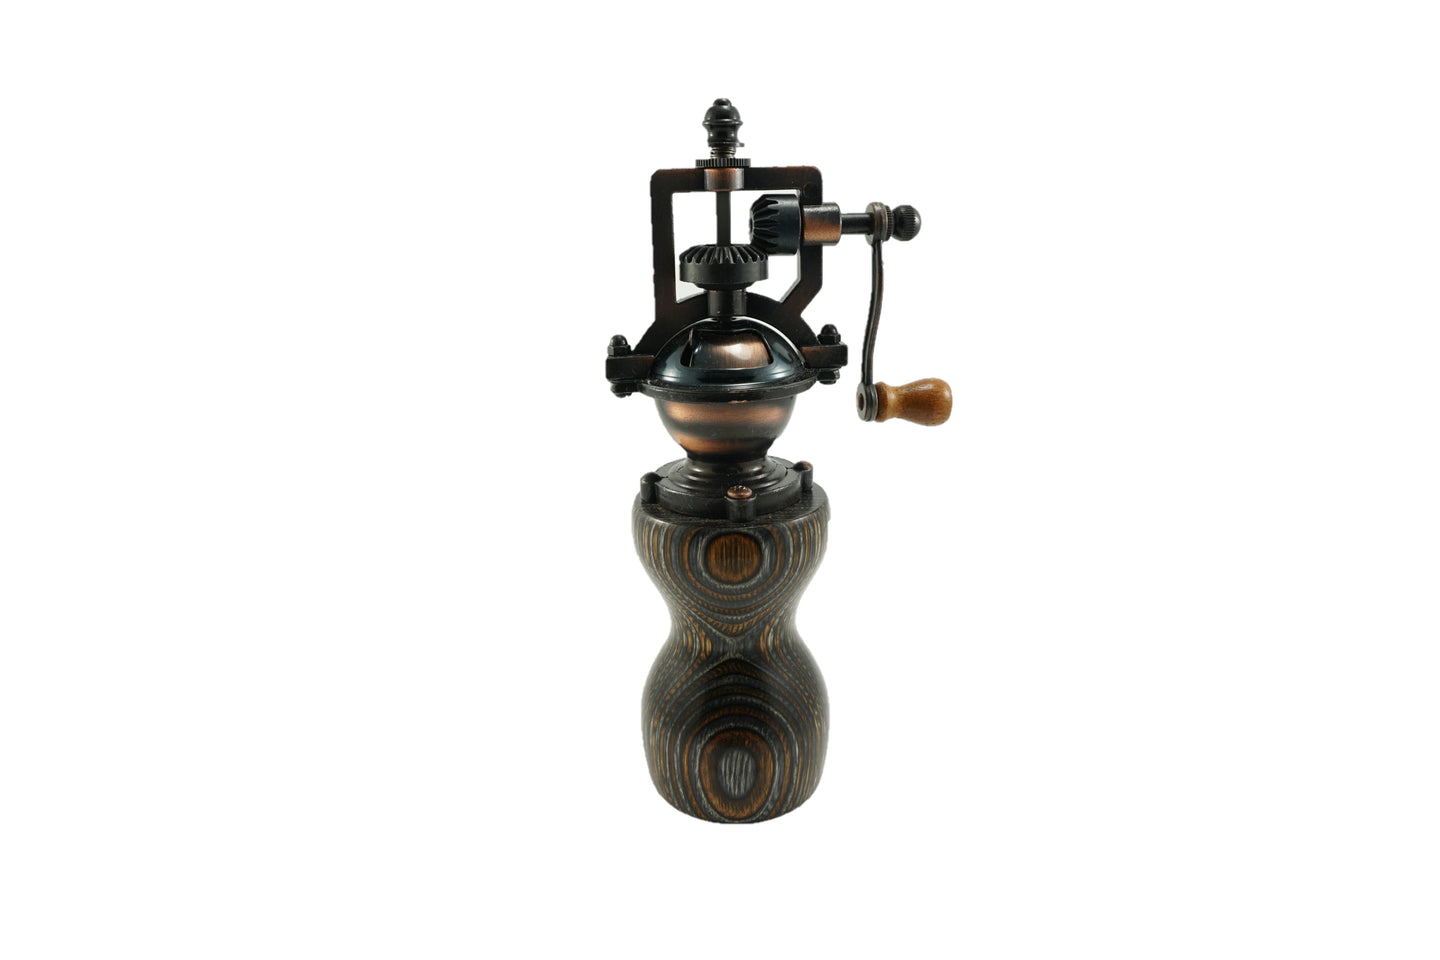 Colored Wood Peppermill - Brown, Gray